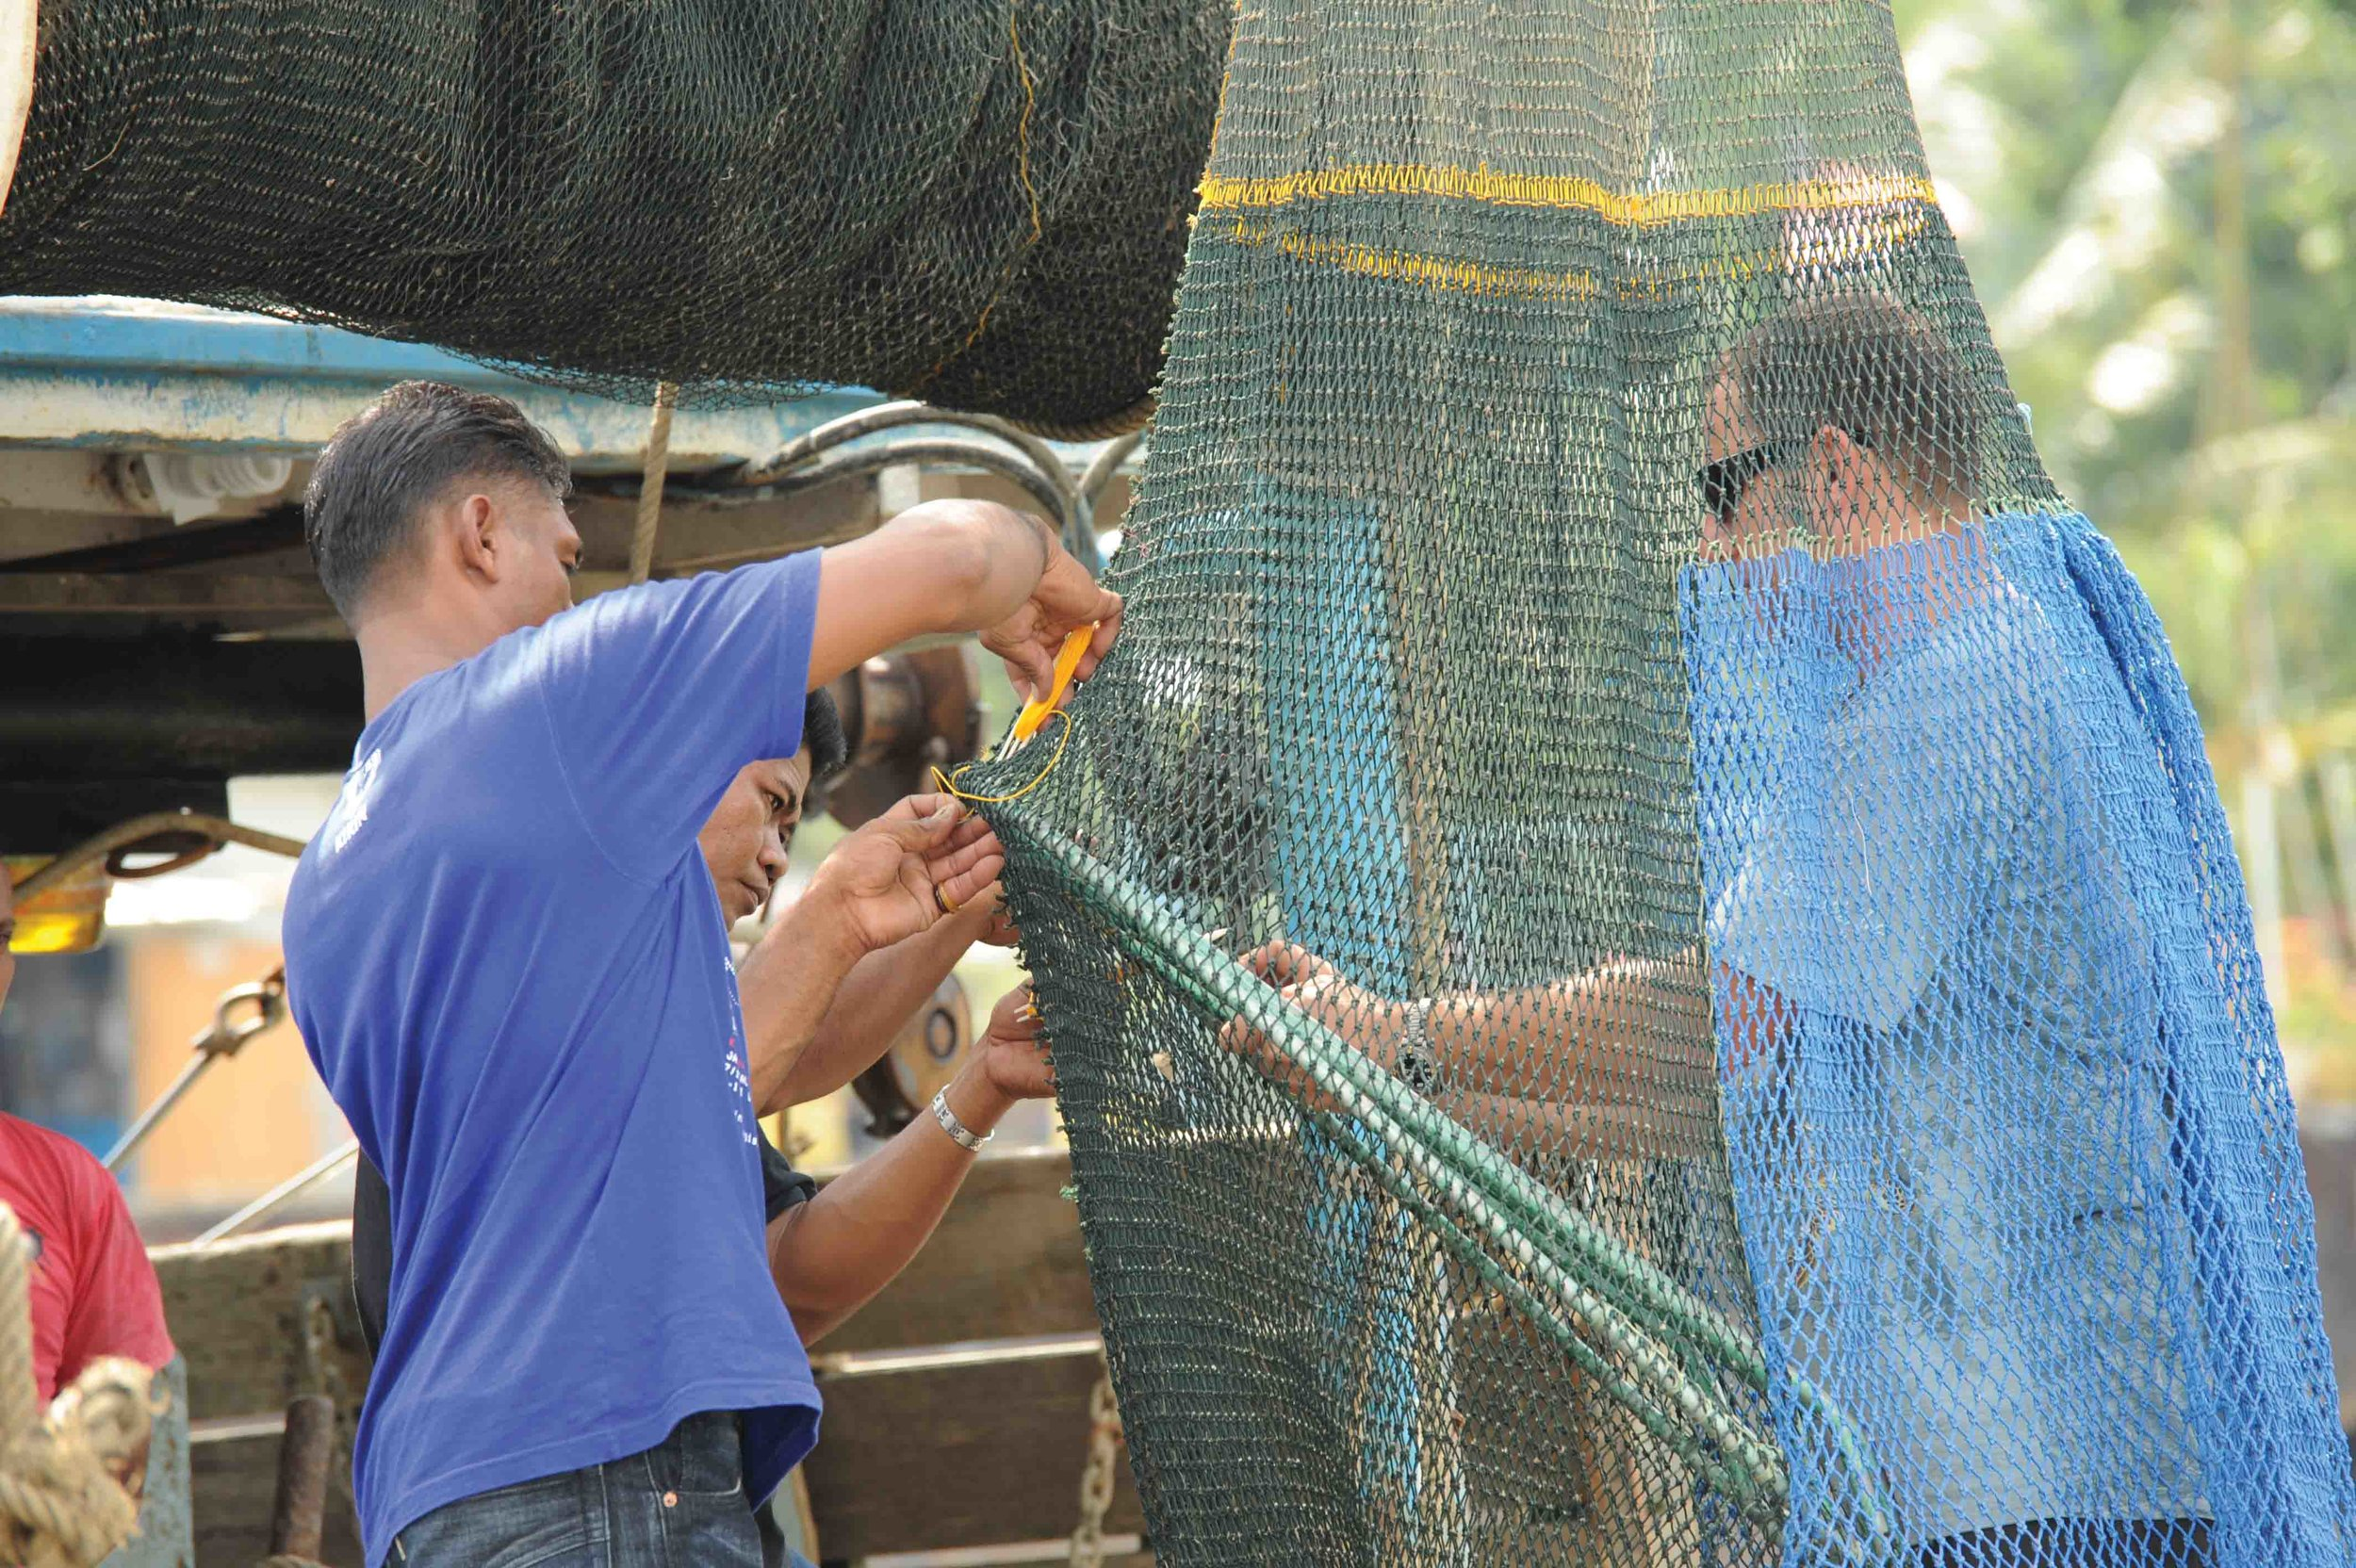 Staff members from the Marine Research Foundation in (Malaysia) work with local fishers to install TEDs in their trawl nets. © Nicholas J. Pilcher